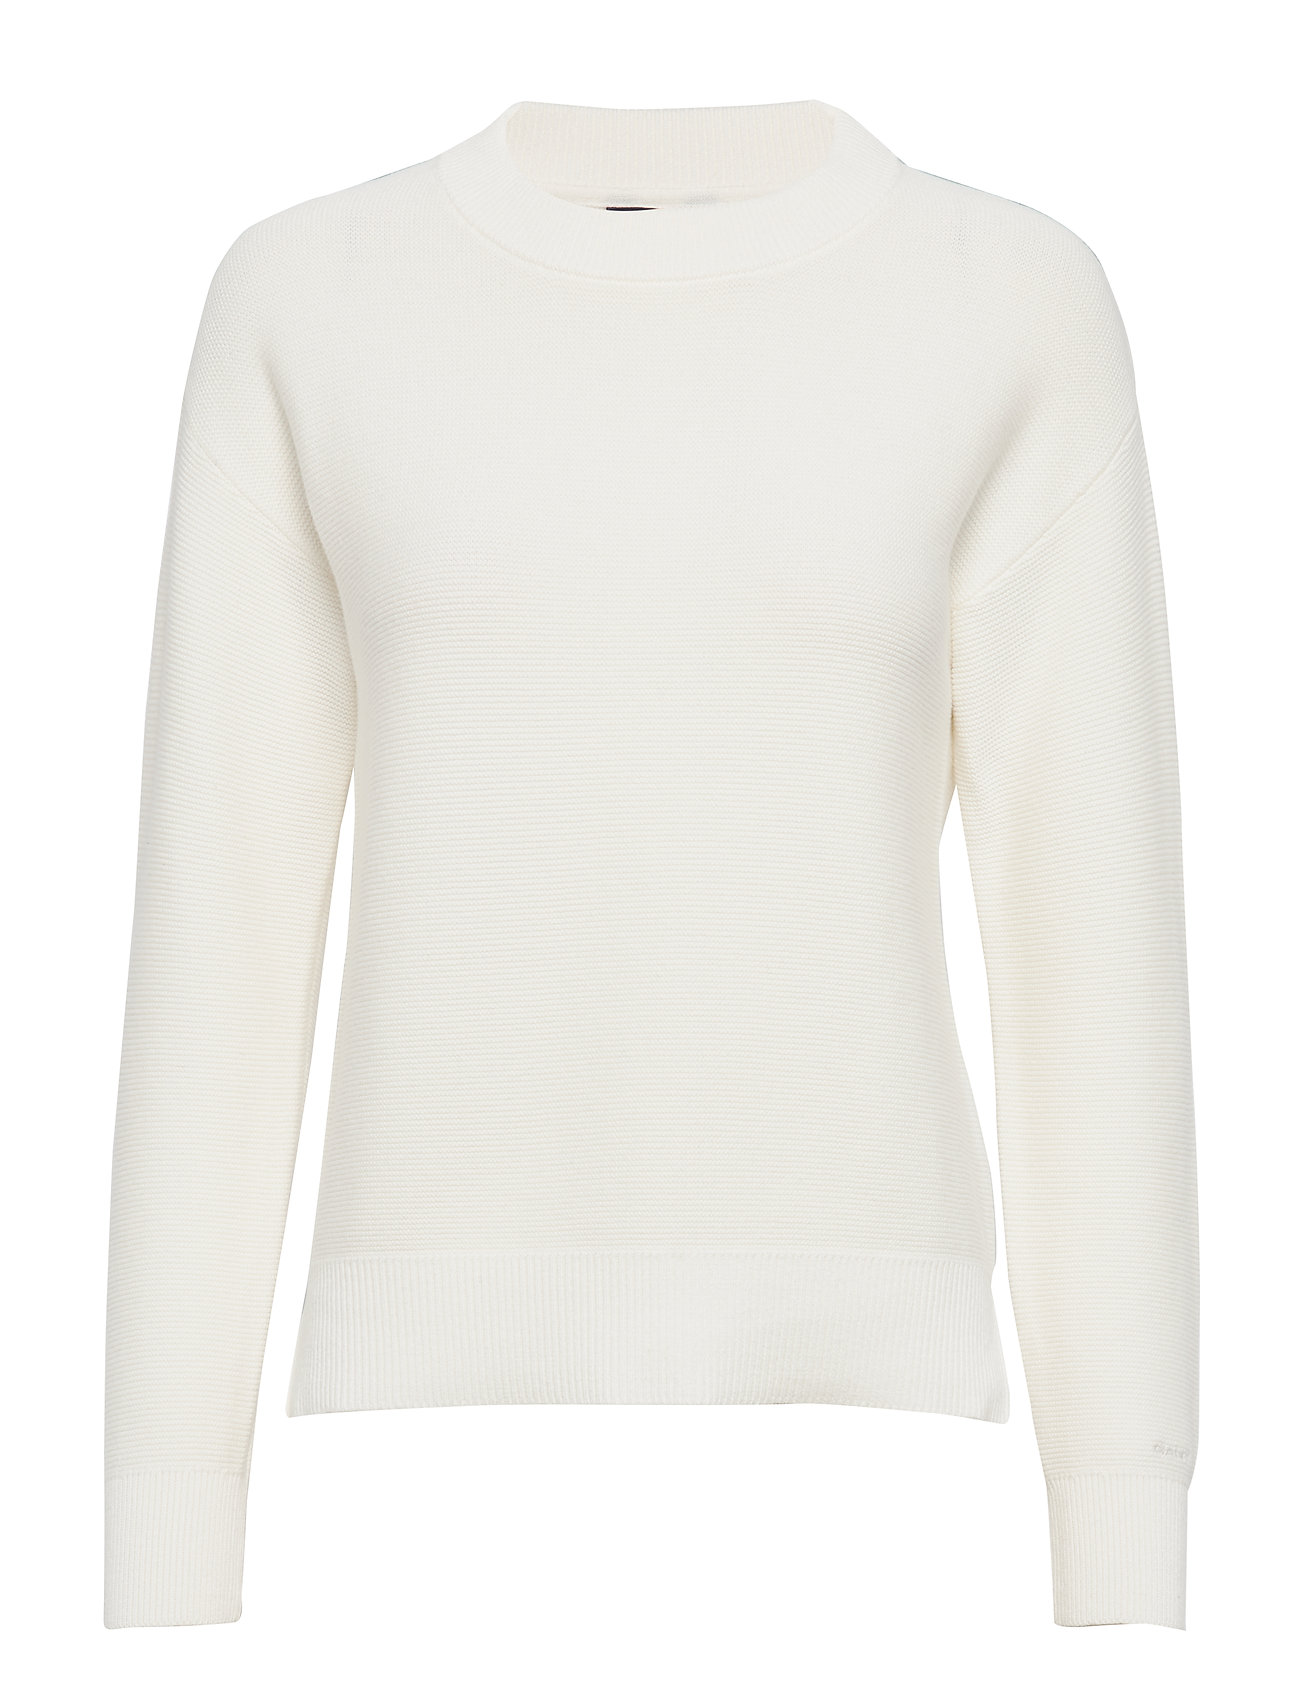 Gant D1. TEXTURED COTTON CREW - EGGSHELL